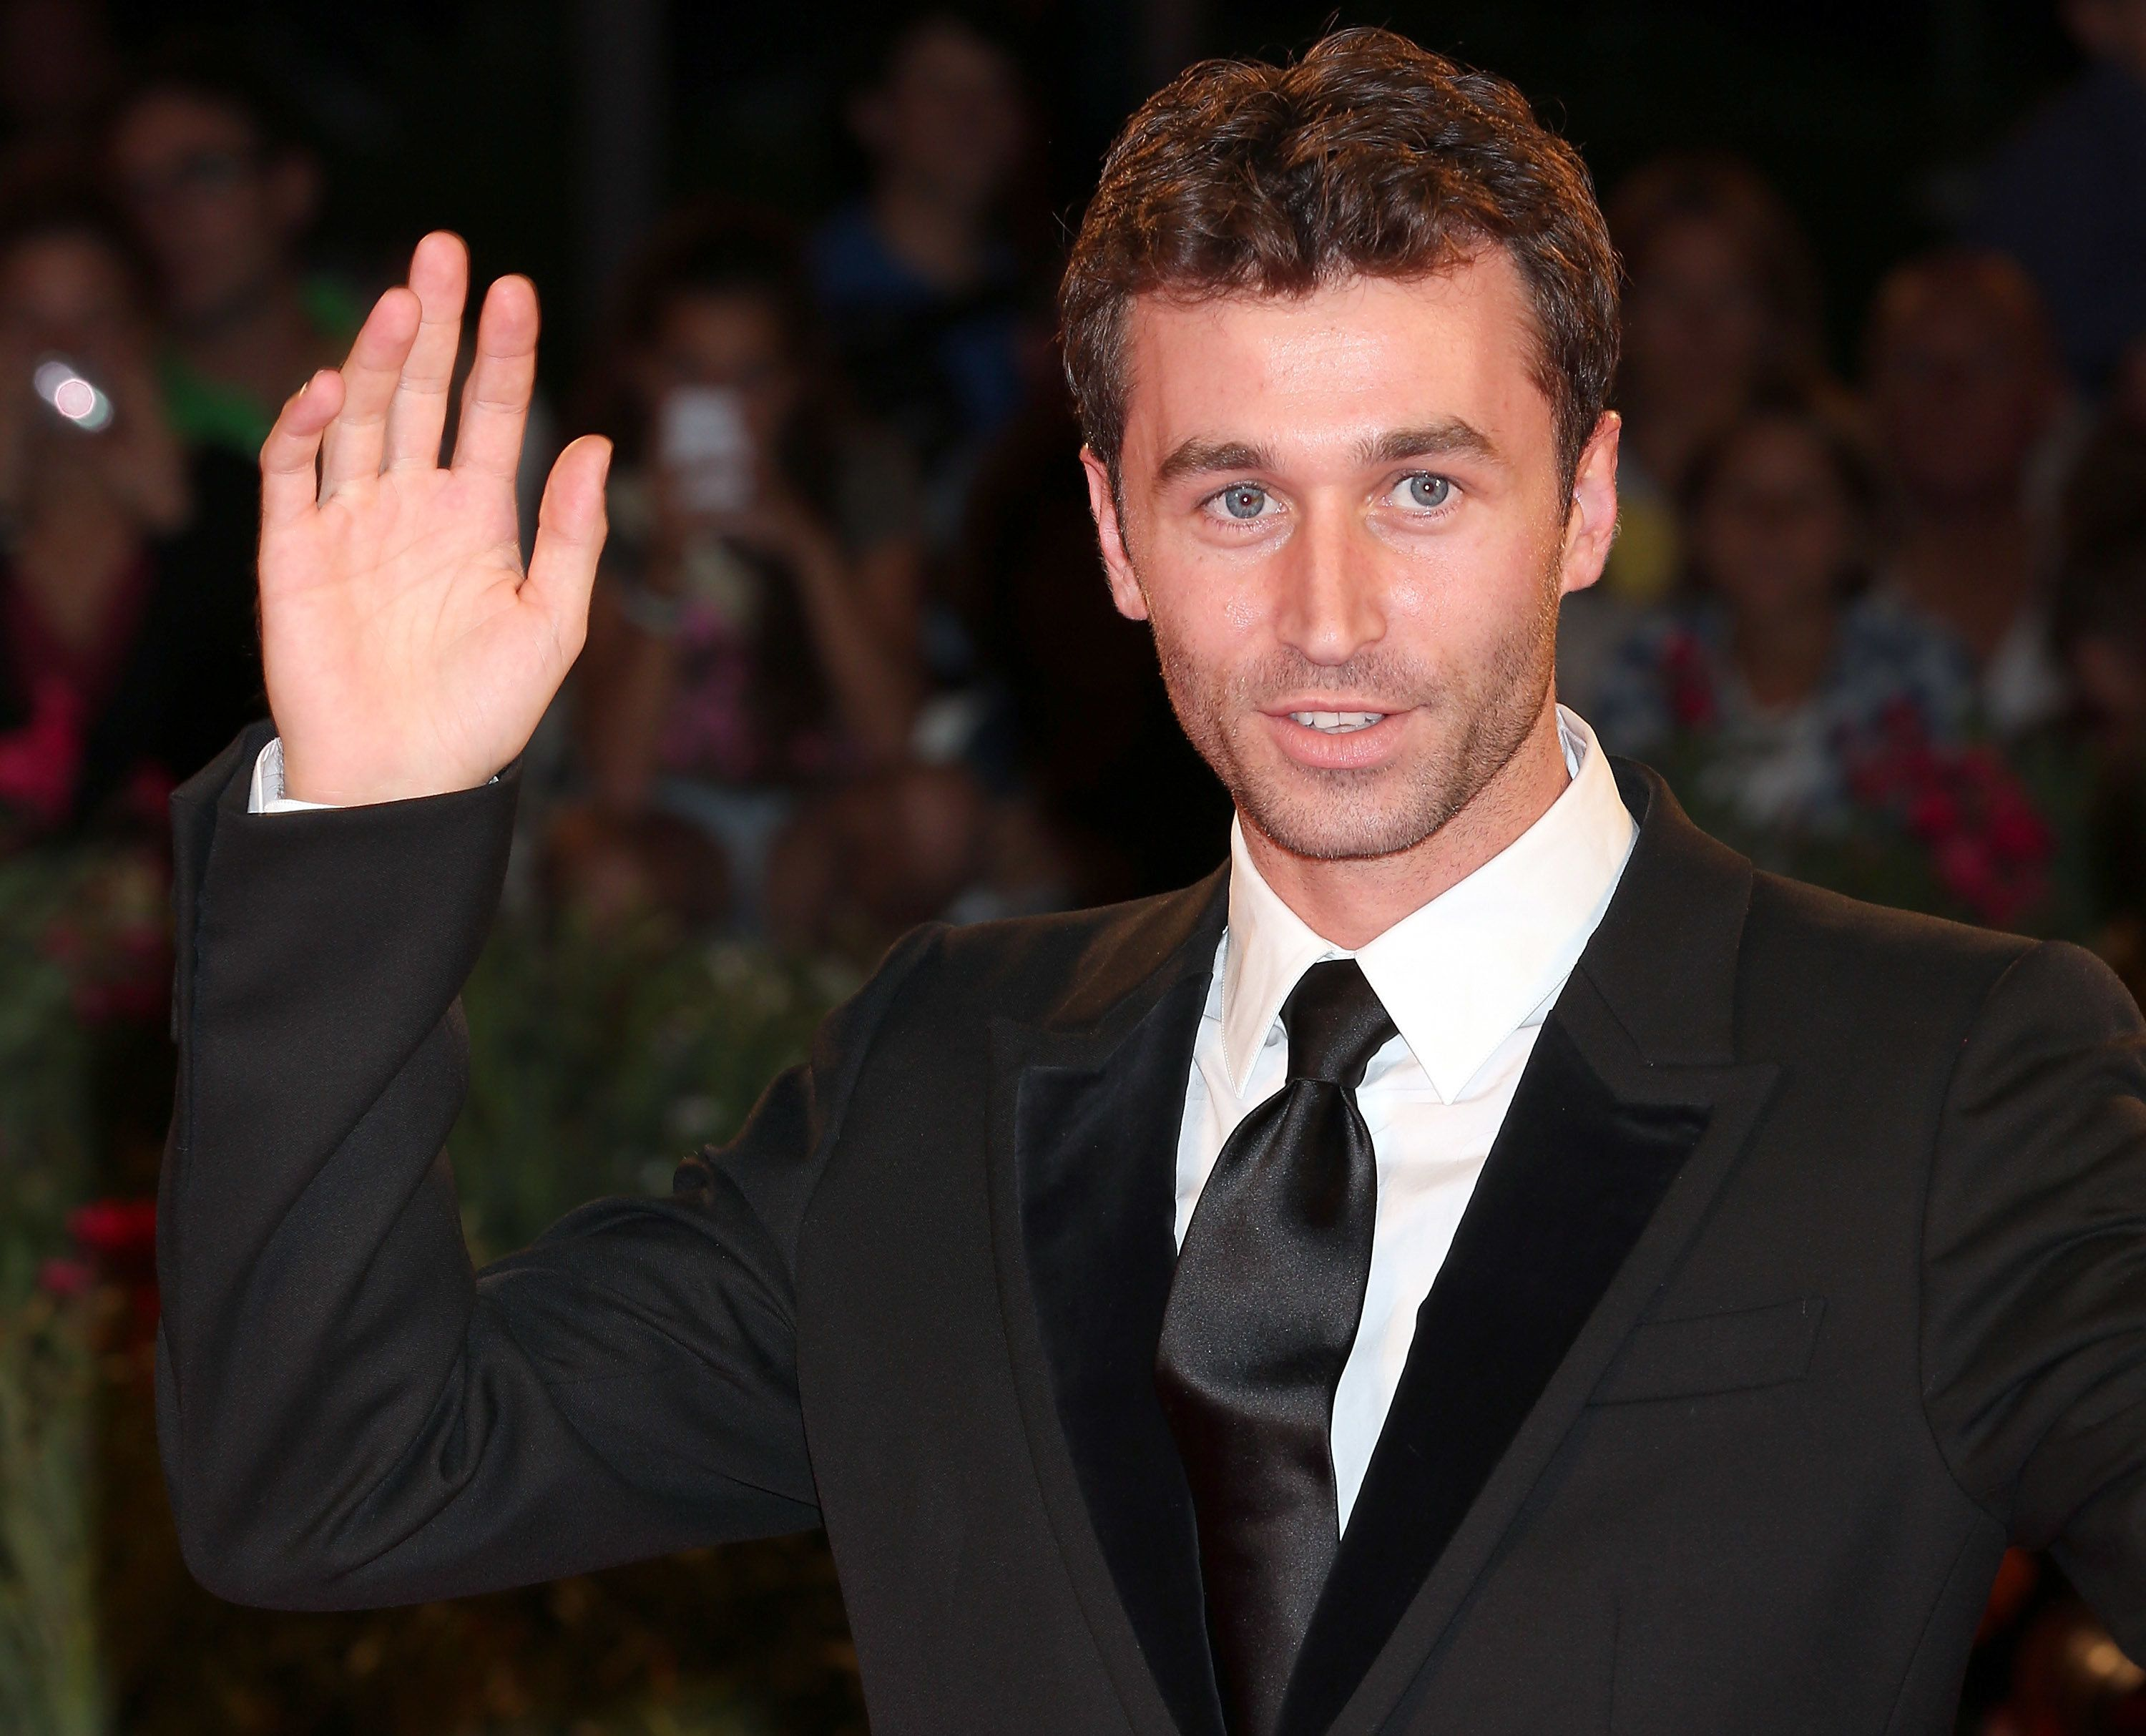 VENICE, ITALY - AUGUST 30:  Actor James Deen attends 'The Canyons' Premiere during The 70th Venice International Film Festival at Palazzo Del Cinema  on August 30, 2013 in Venice, Italy.  (Photo by Elisabetta A. Villa/WireImage)